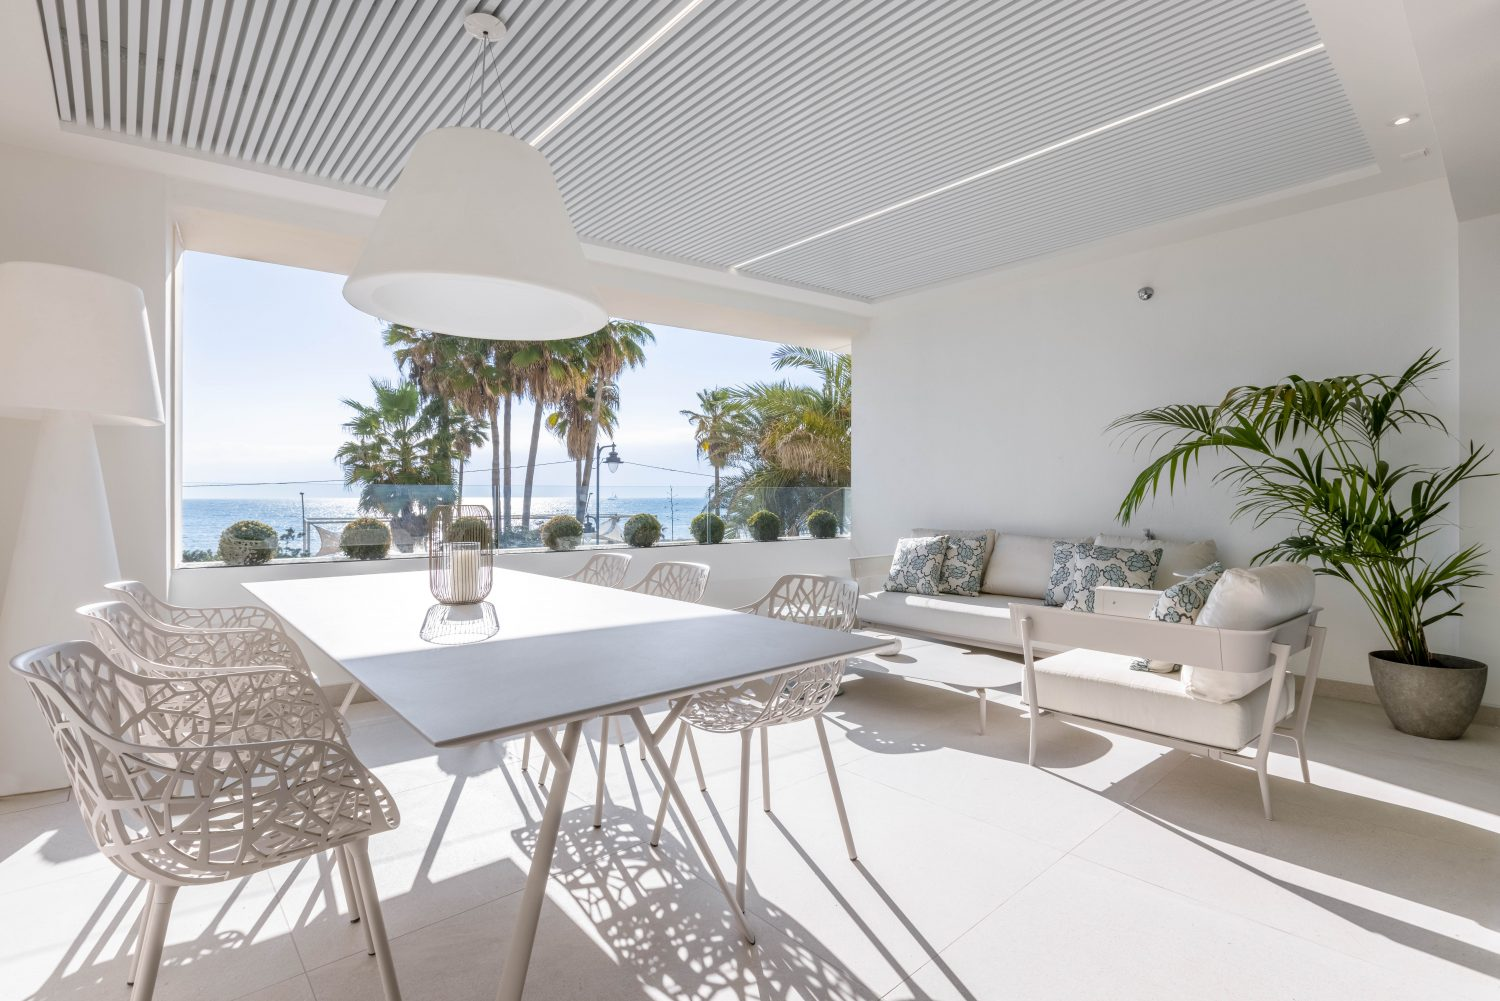 1,2 & 3 bedroom seafront apartments for sale in Estepona.